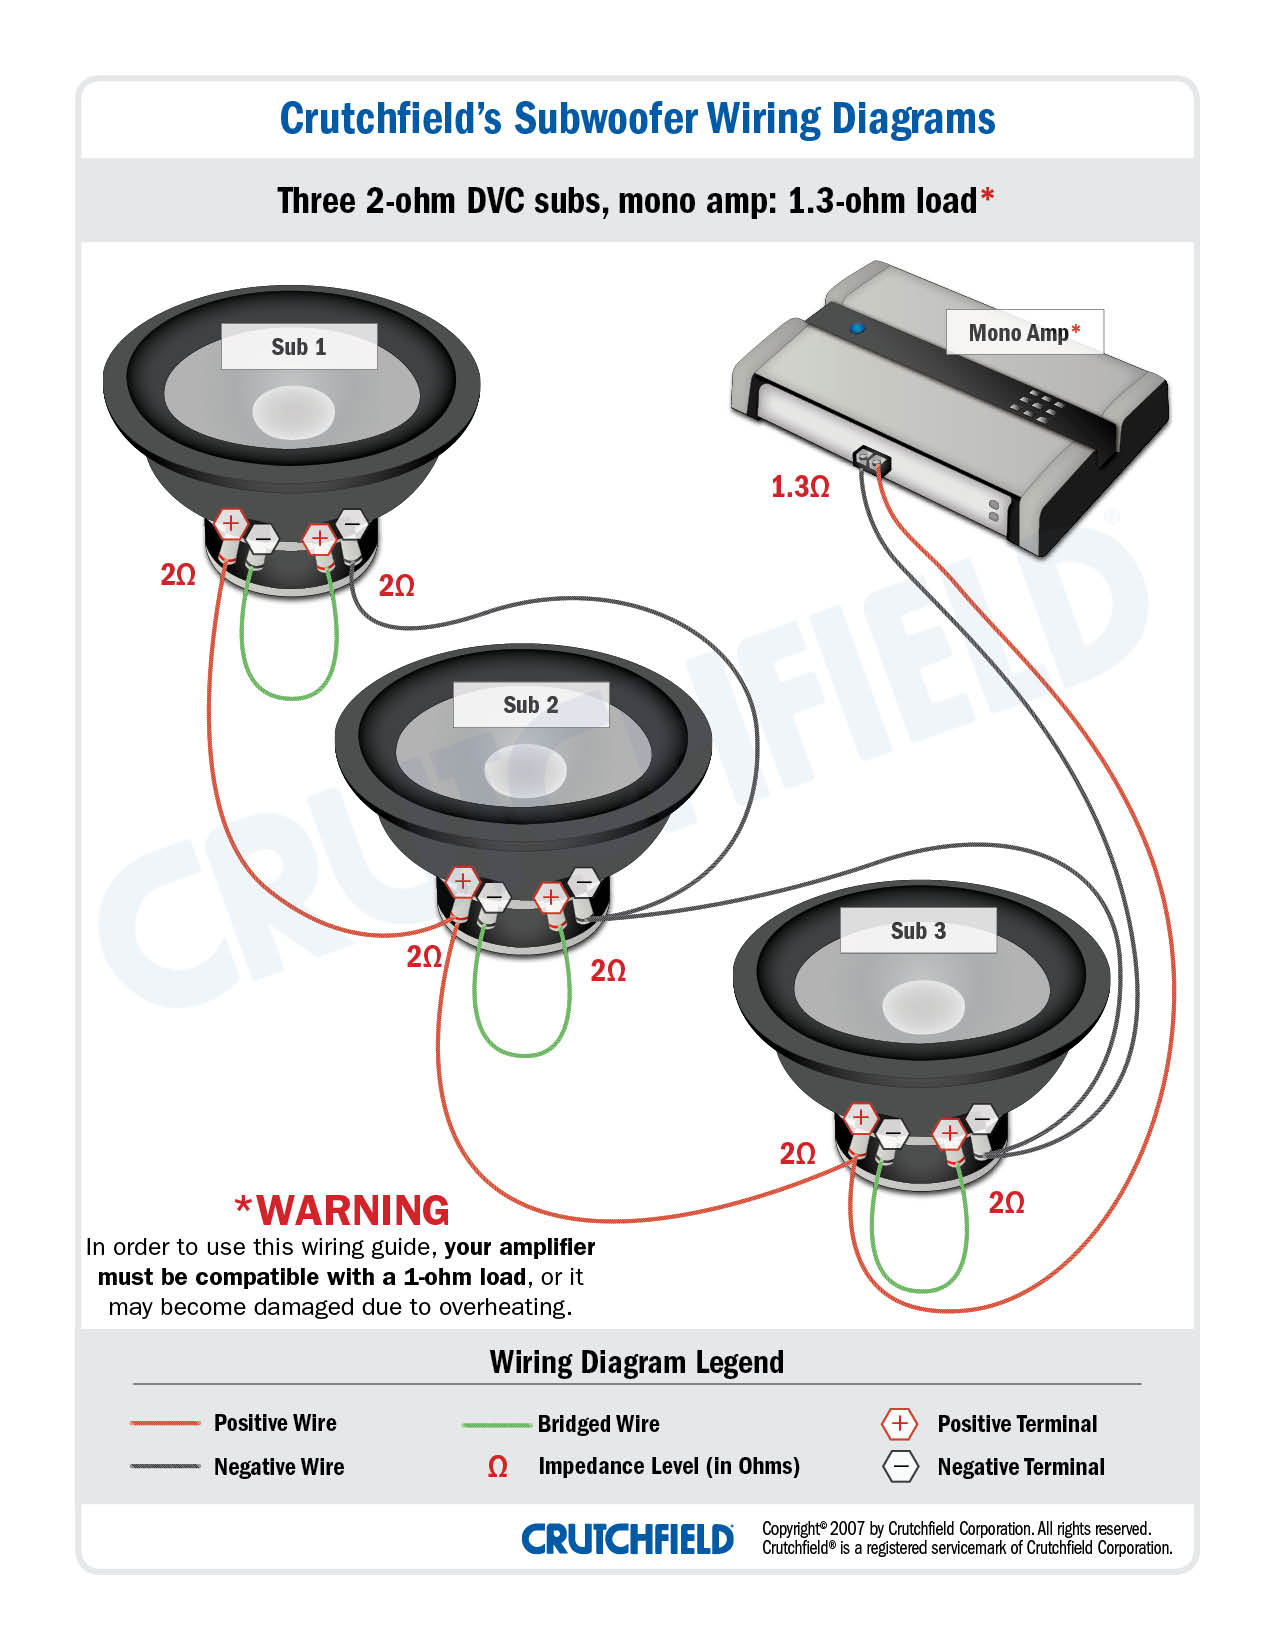 3 DVC 2 ohm mono low imp subwoofer wiring diagrams 6 subwoofer wiring diagram at edmiracle.co